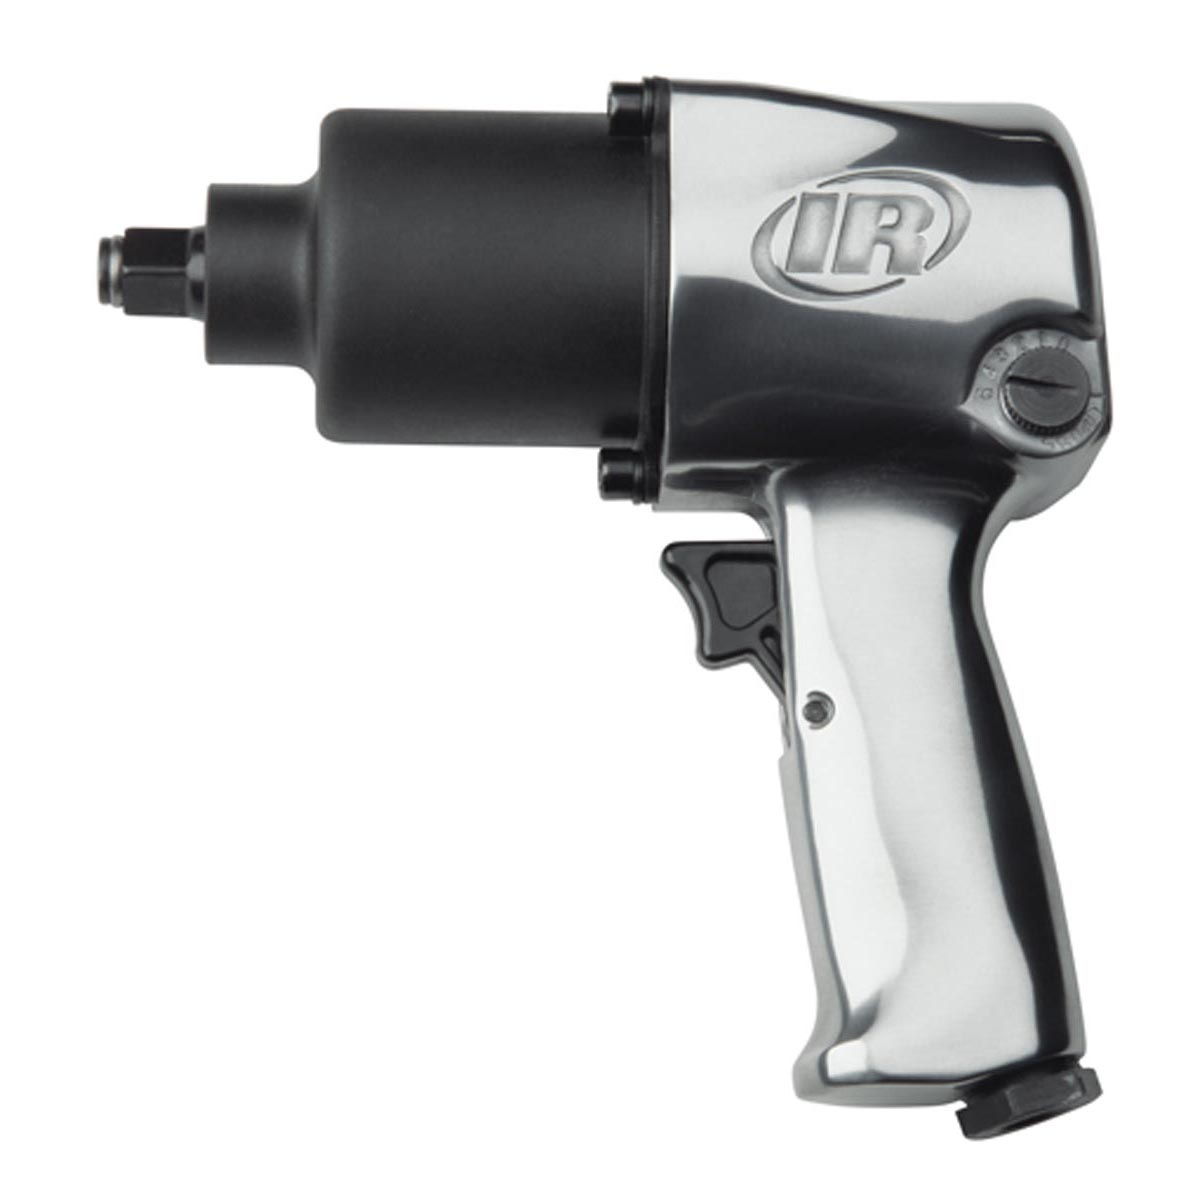 1/2-In Drive Super Duty Air Impact Wrench - 600 Ft-Lbs Max Torque